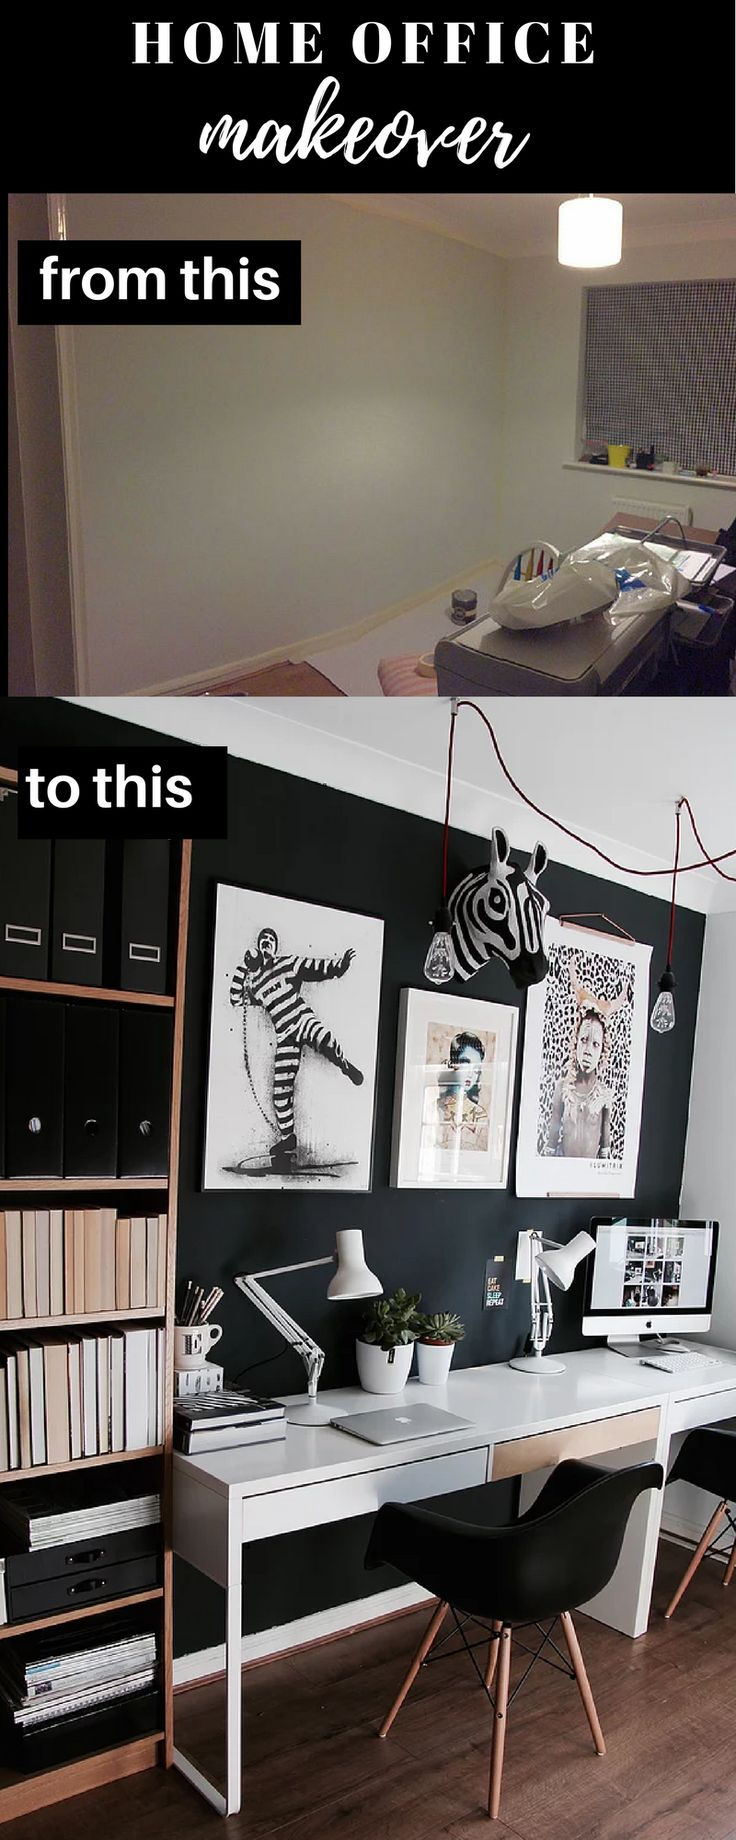 The step by step transformation of my office over a period of months. How I turned this unloved space into something that feels very creative and eclectic. With modern looking black walls (Railings by Farrow and Ball) and suspension lights, I have added my favourite artwork and Anglepoise lamps while retaining the original IKEA desk and bookcase.